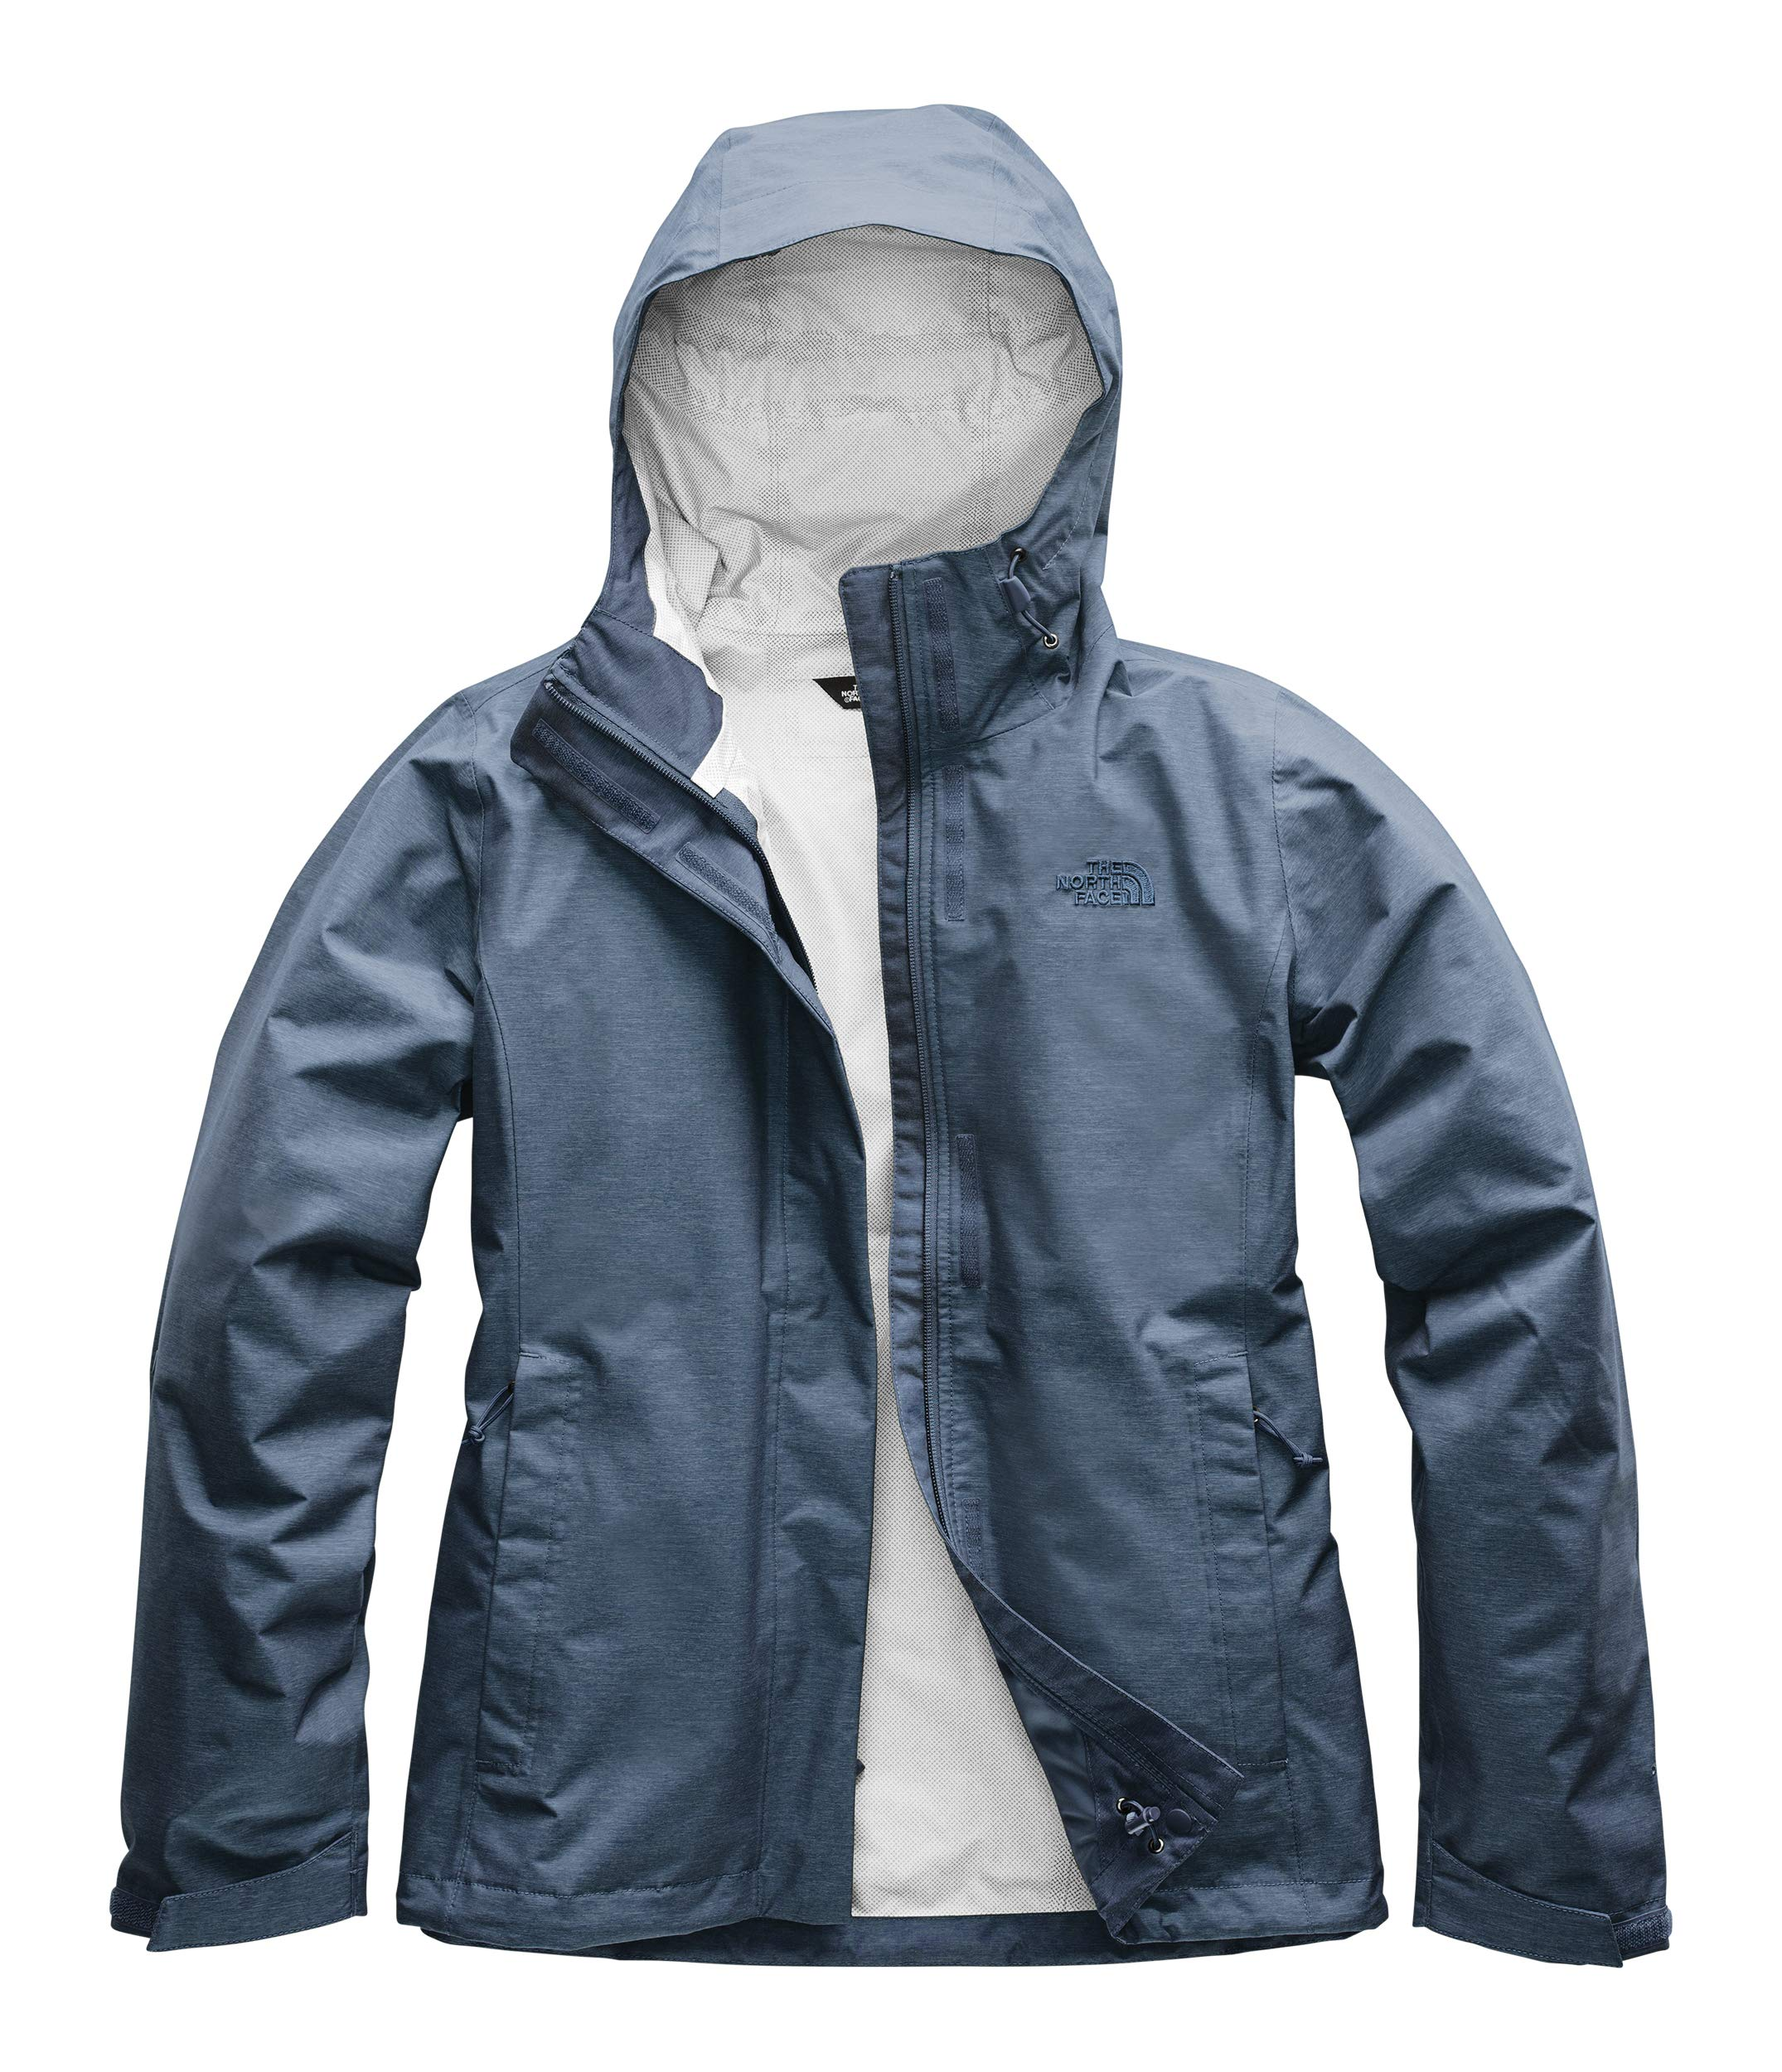 The North Face Women's Venture 2 Jacket, Blue Wing Teal Heather, Size XS by The North Face (Image #1)